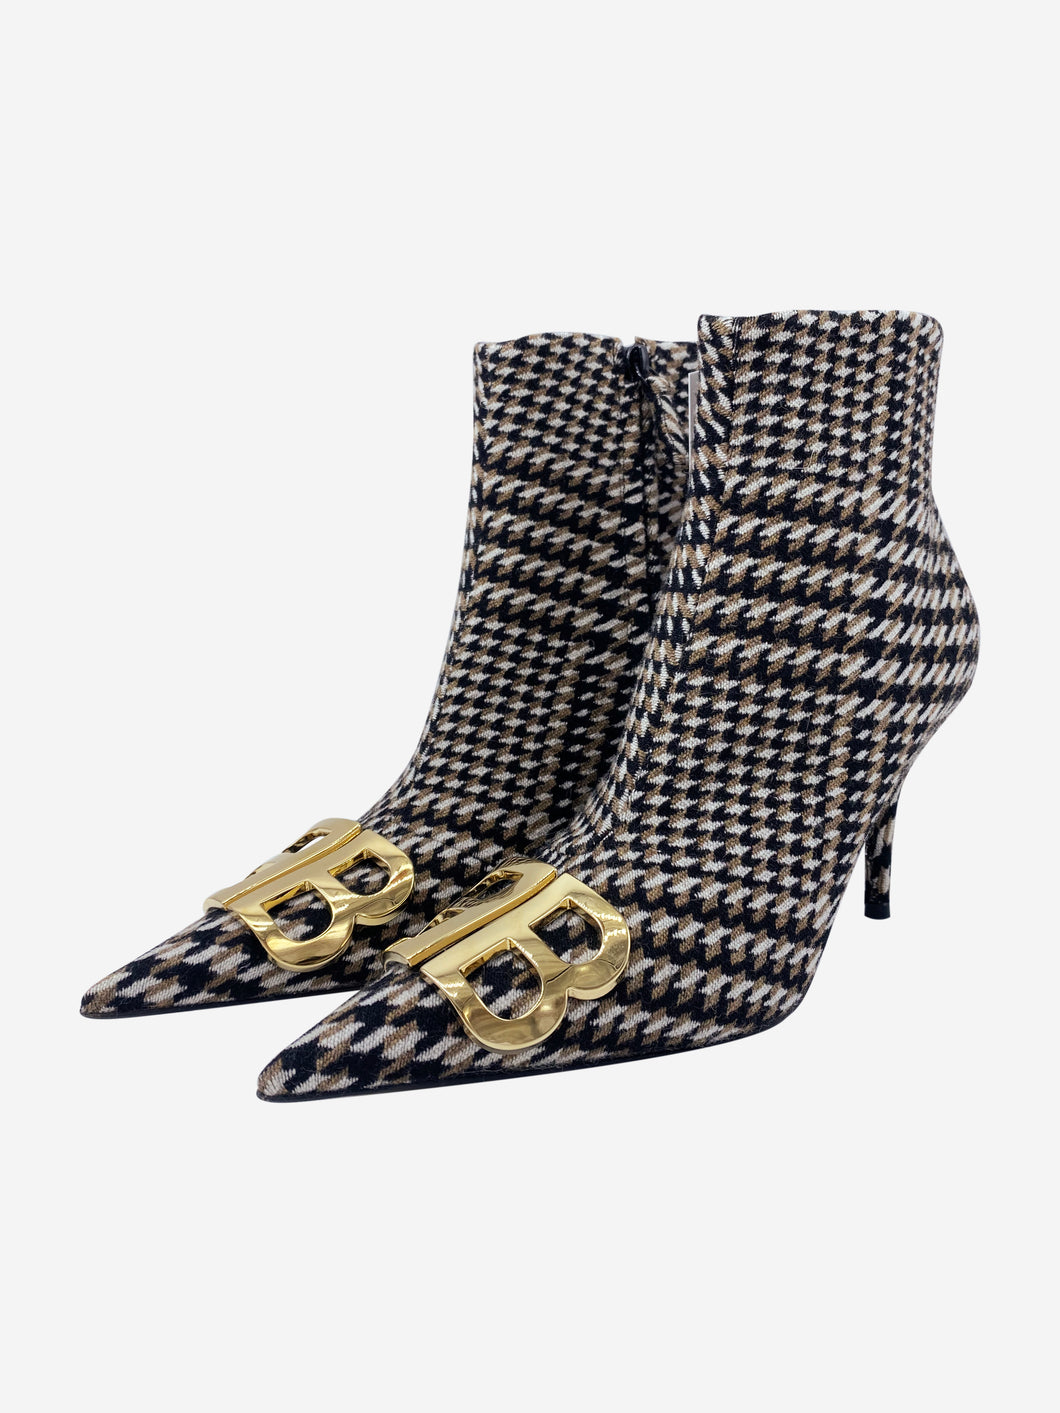 Black & cream houndstooth Knife boots - size EU 38